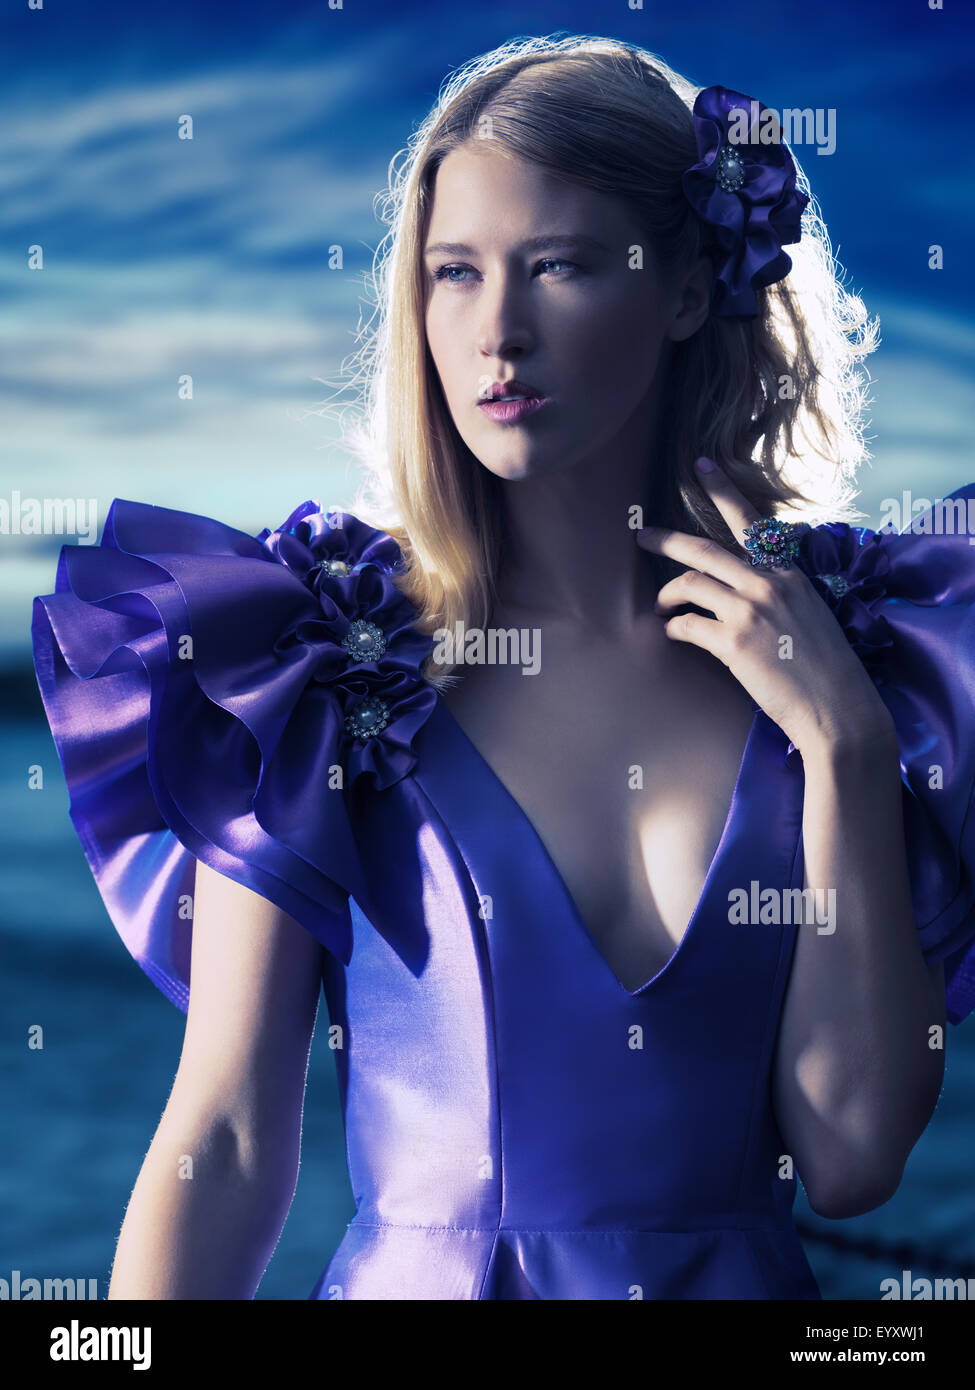 Beauty portrait of a young beautiful blond woman wearing a blue evening dress outdoors - Stock Image